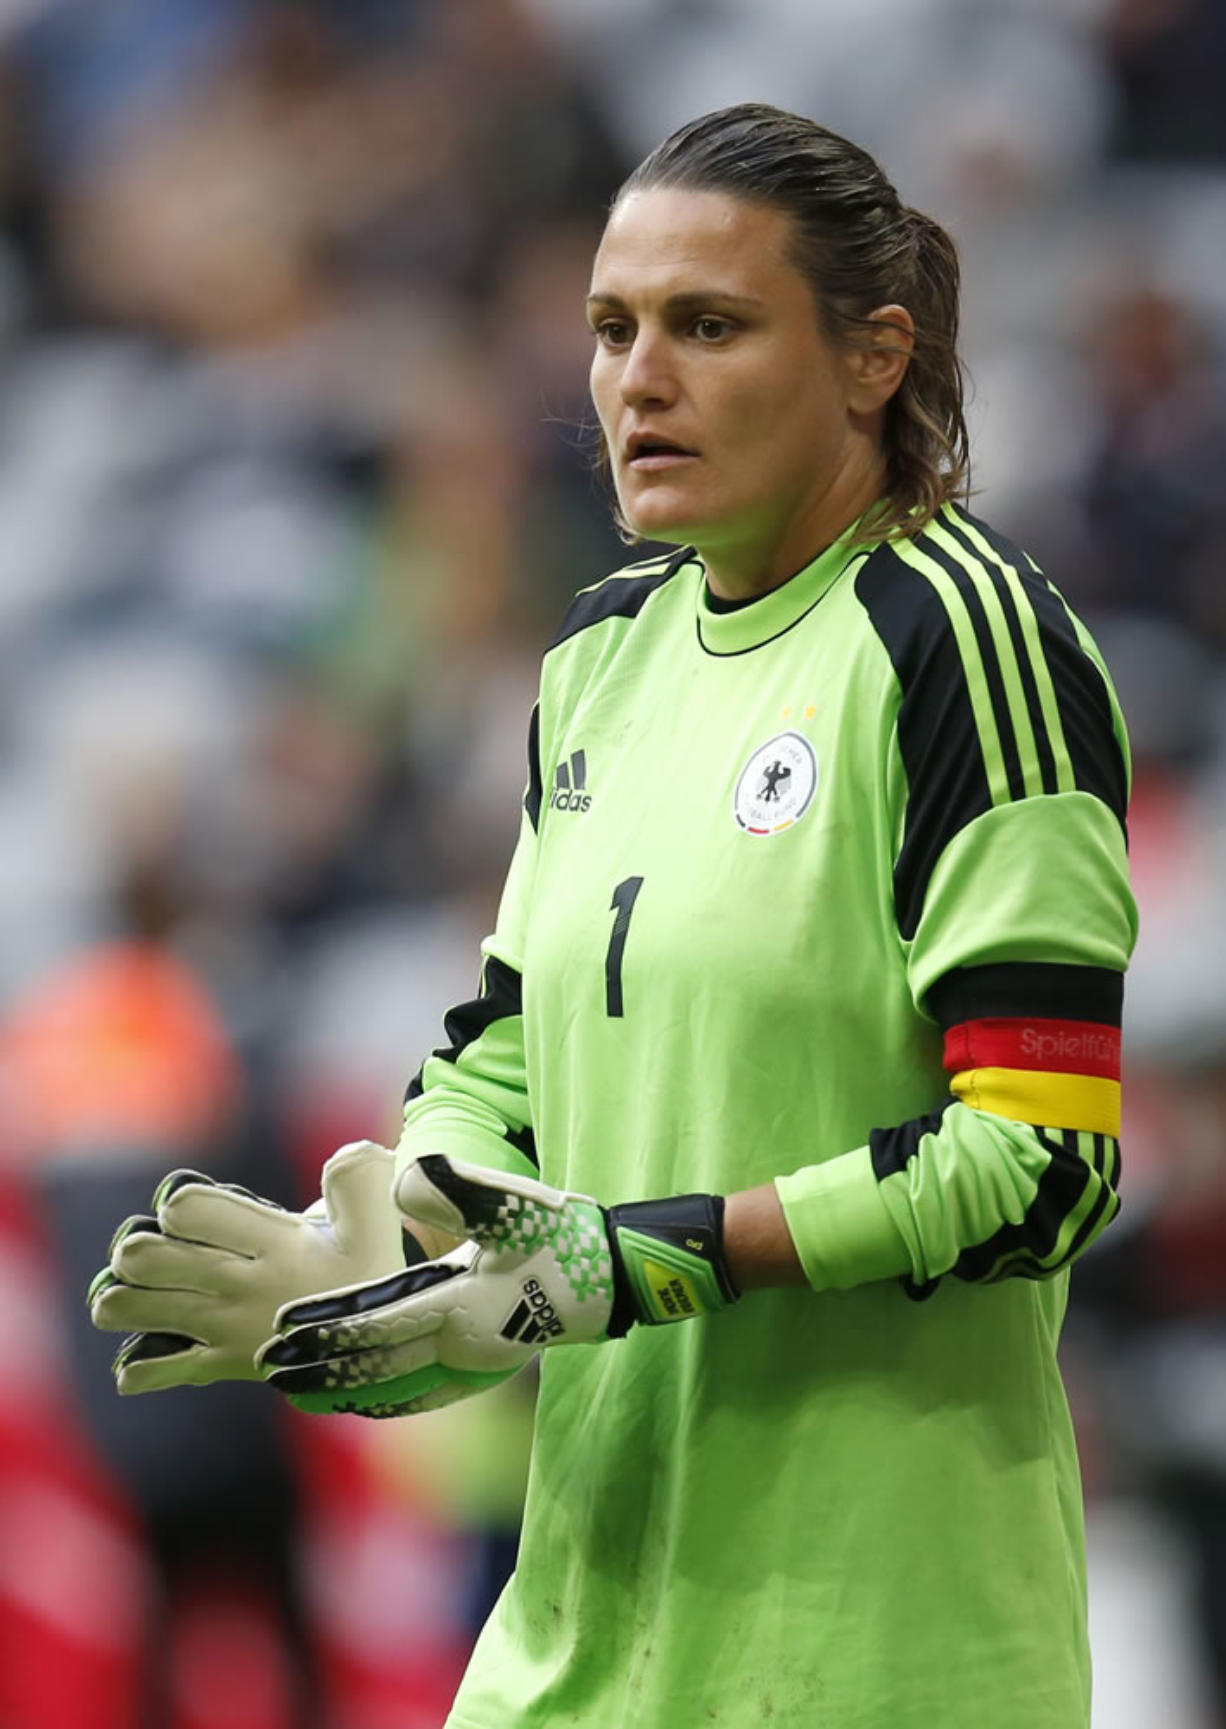 Germany goalkeeper Nadine Angerer, named the world's best female soccer player by FIFA for 2013, has joined the Portland Thorns FC.